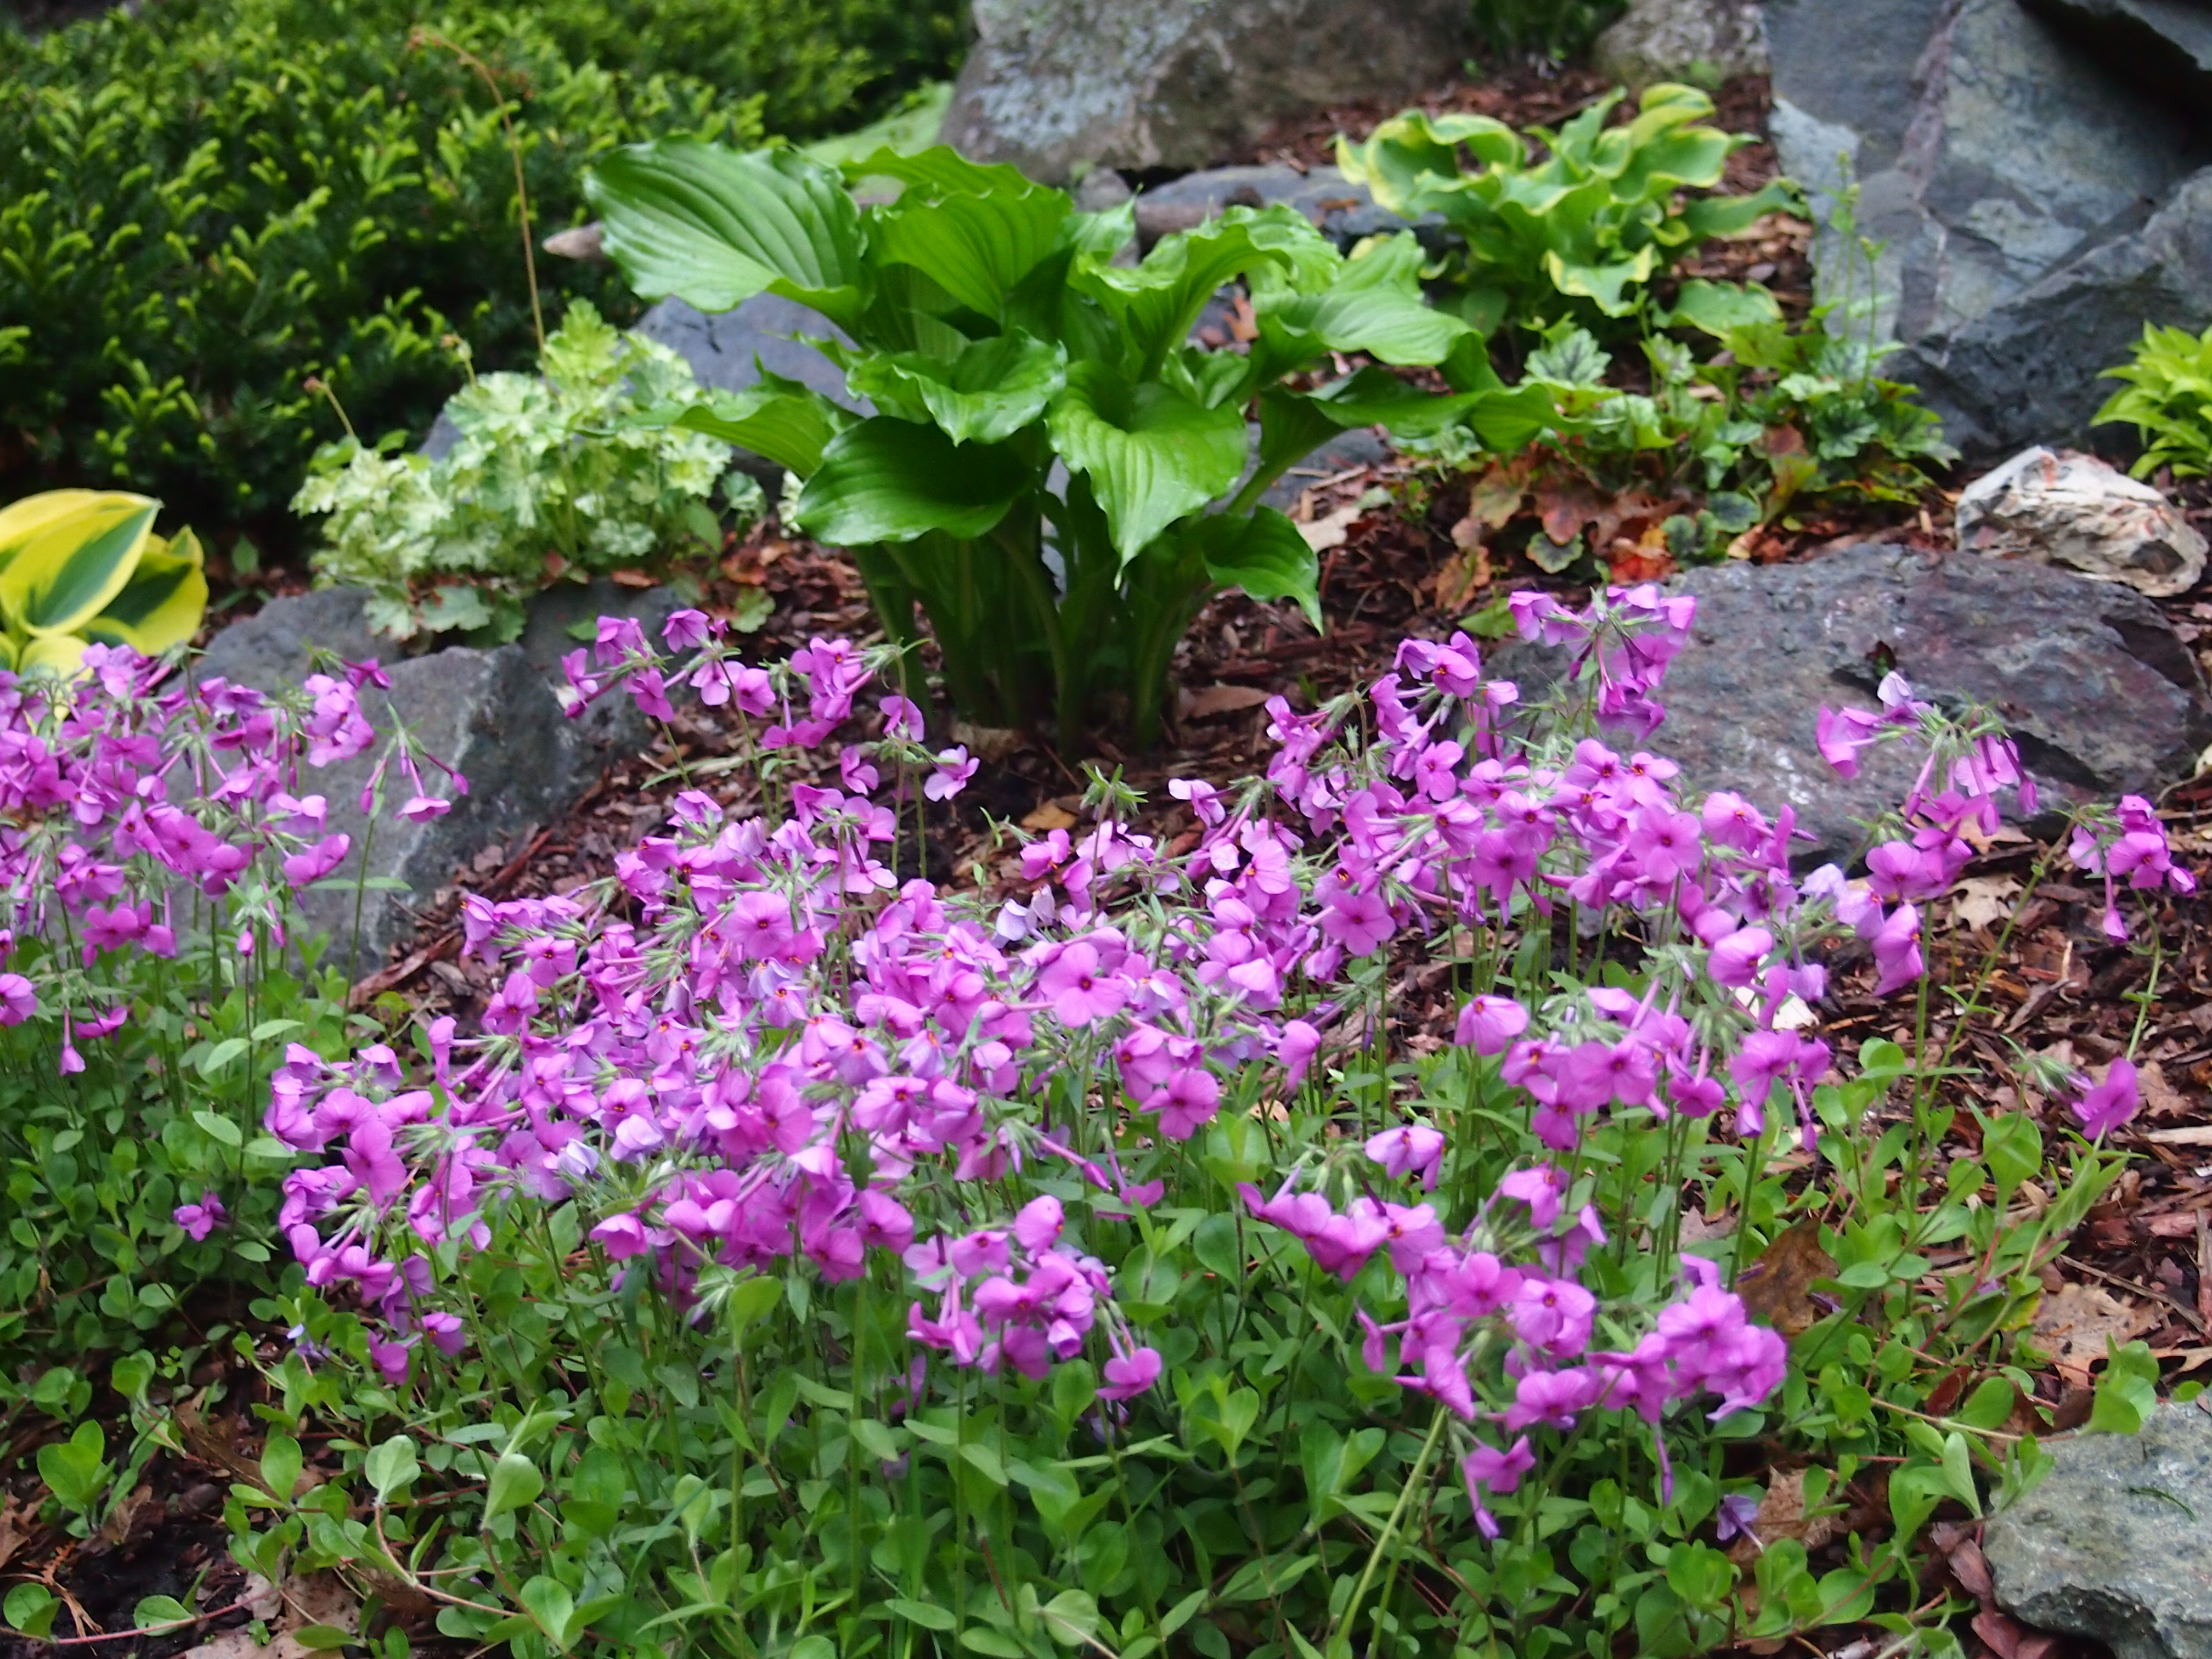 Creeping Phlox Archives - Knecht's Nurseries & Landscaping